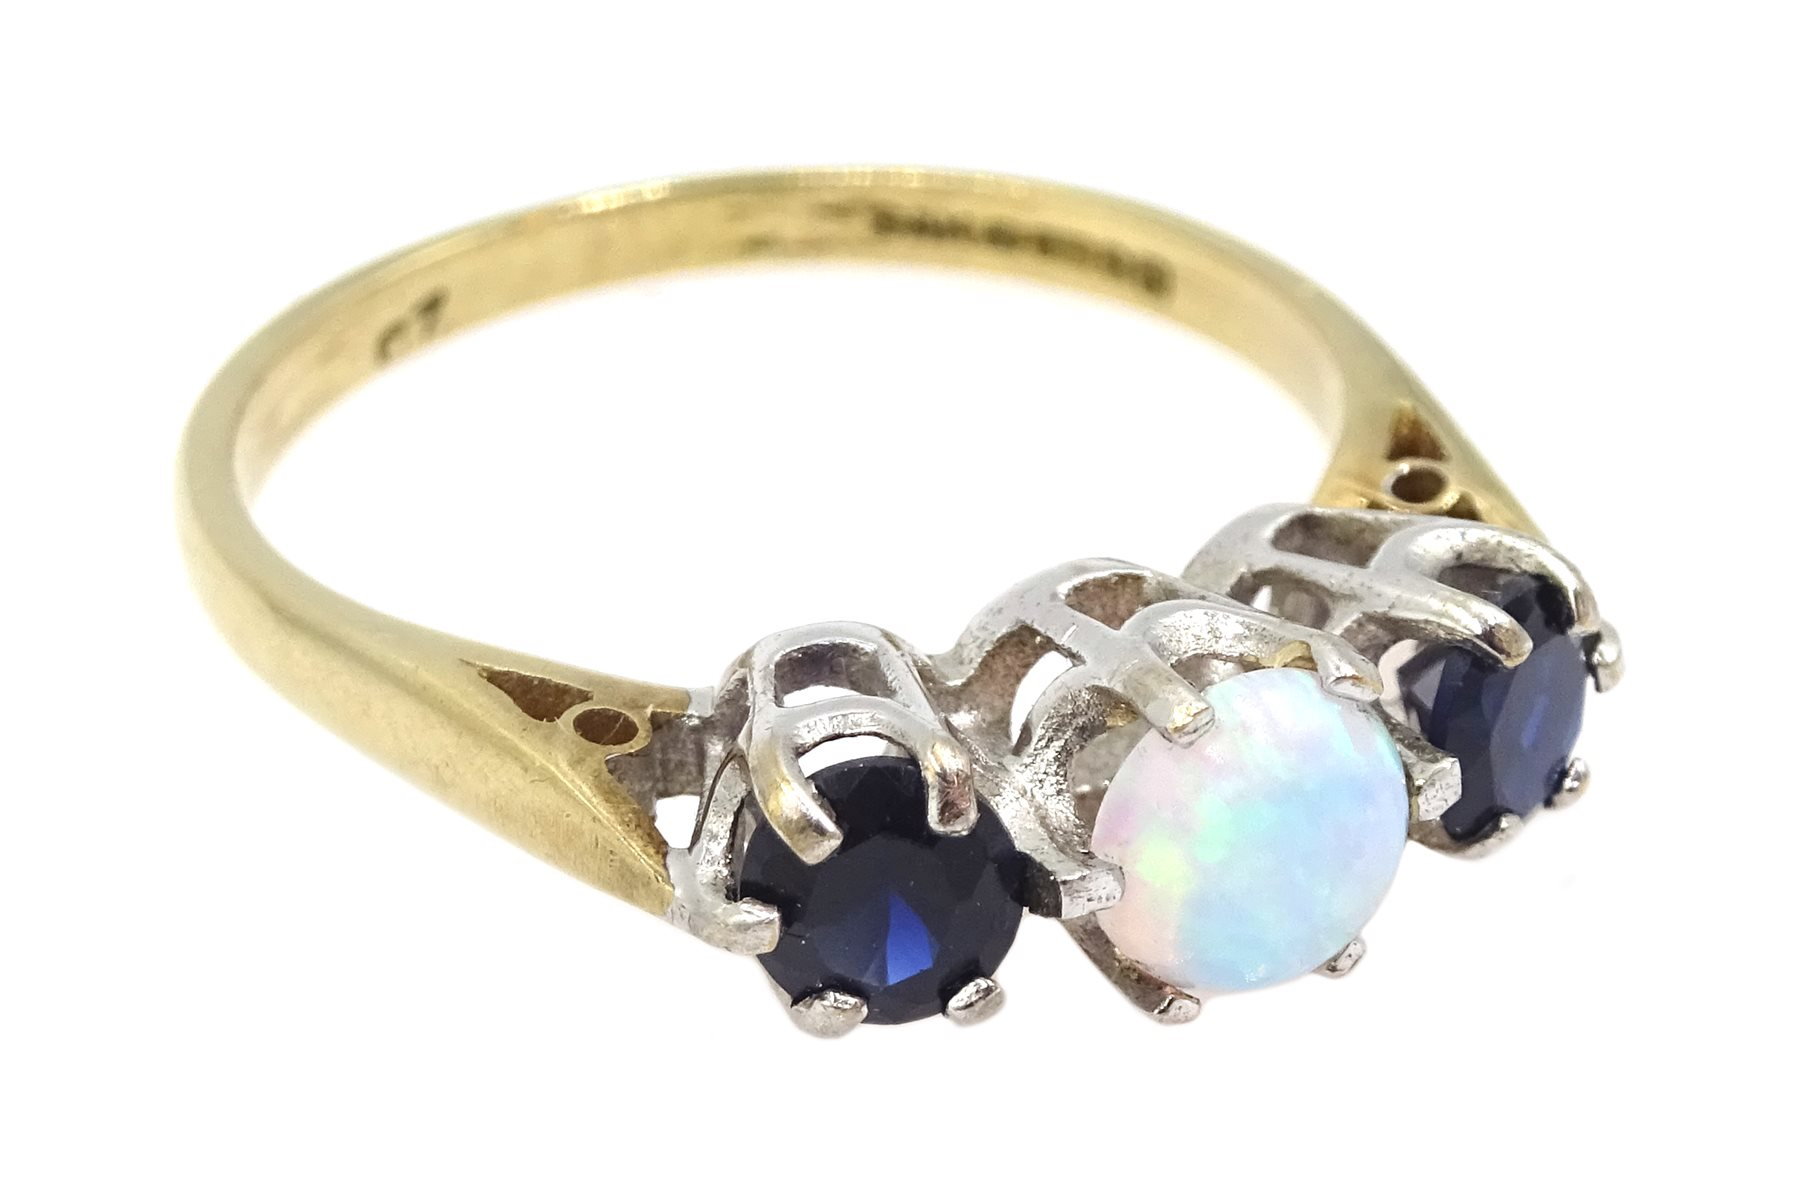 9ct gold three stone opal and sapphire ring, hallmarked - Image 2 of 3